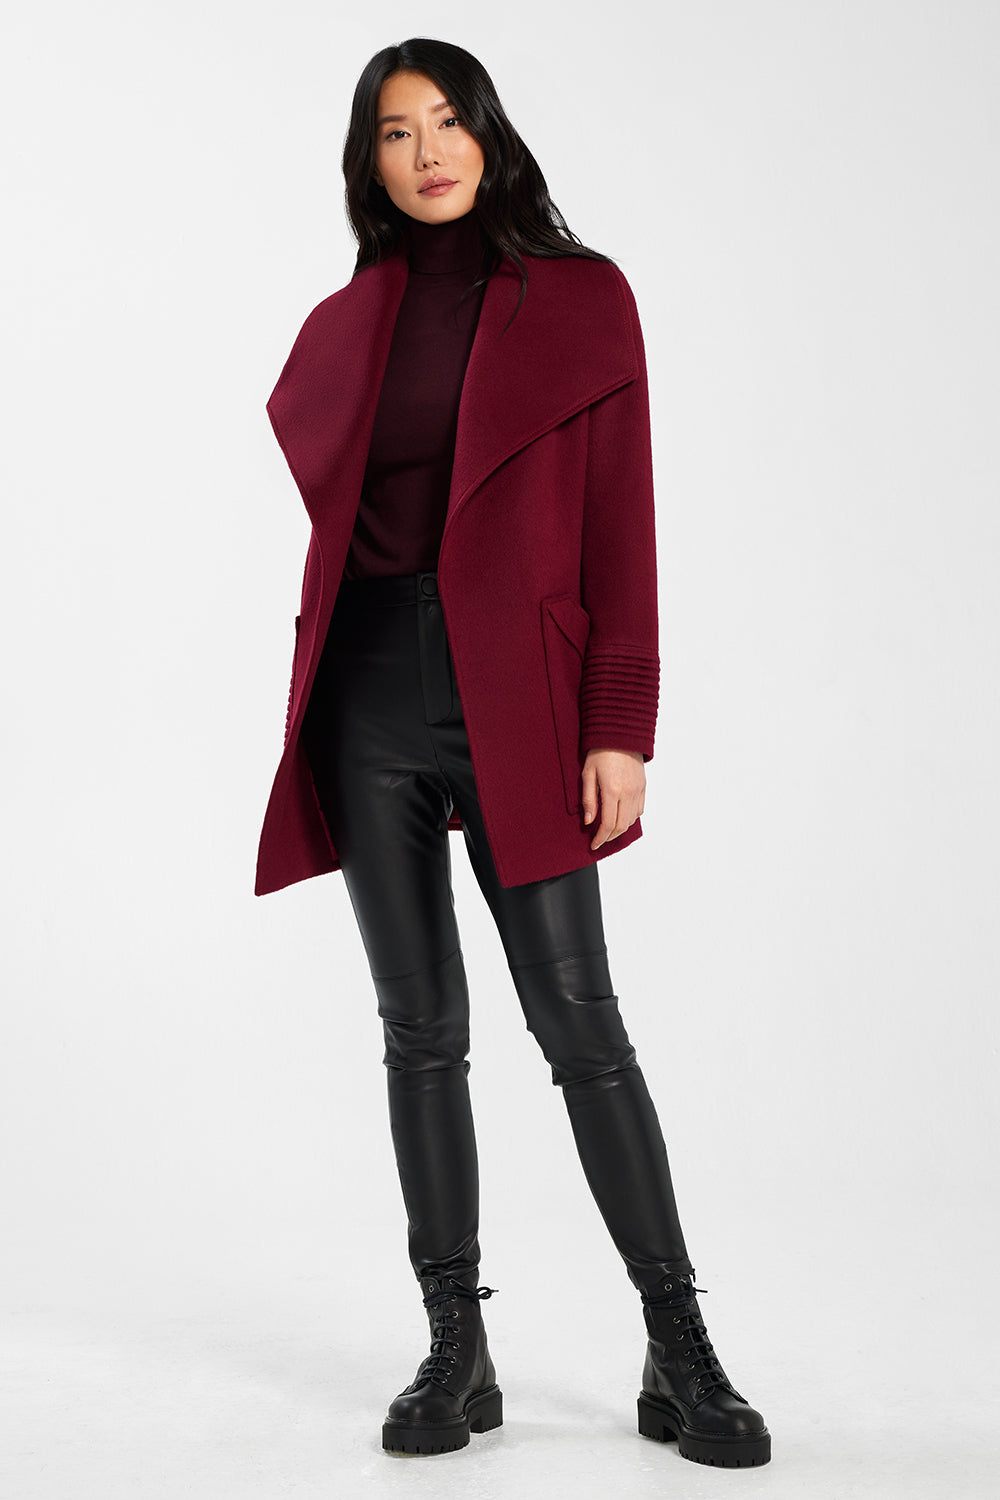 Sentaler Cropped Wide Collar Wrap Coat featured in Baby Alpaca and available in Garnet Red. Seen open.